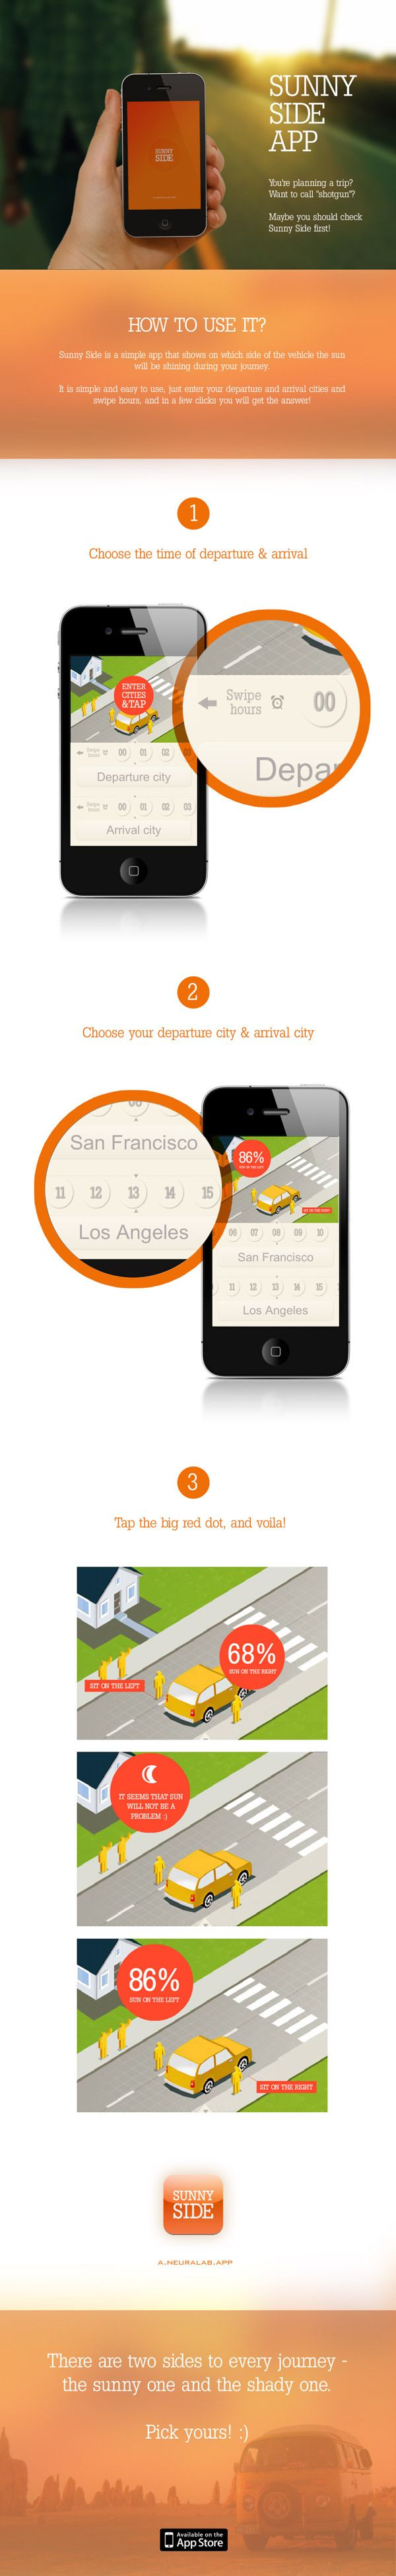 Planning a trip? Want to call 'shotgun'? Maybe you should check Sunny Side first! -  New mobile app for iOs devices.